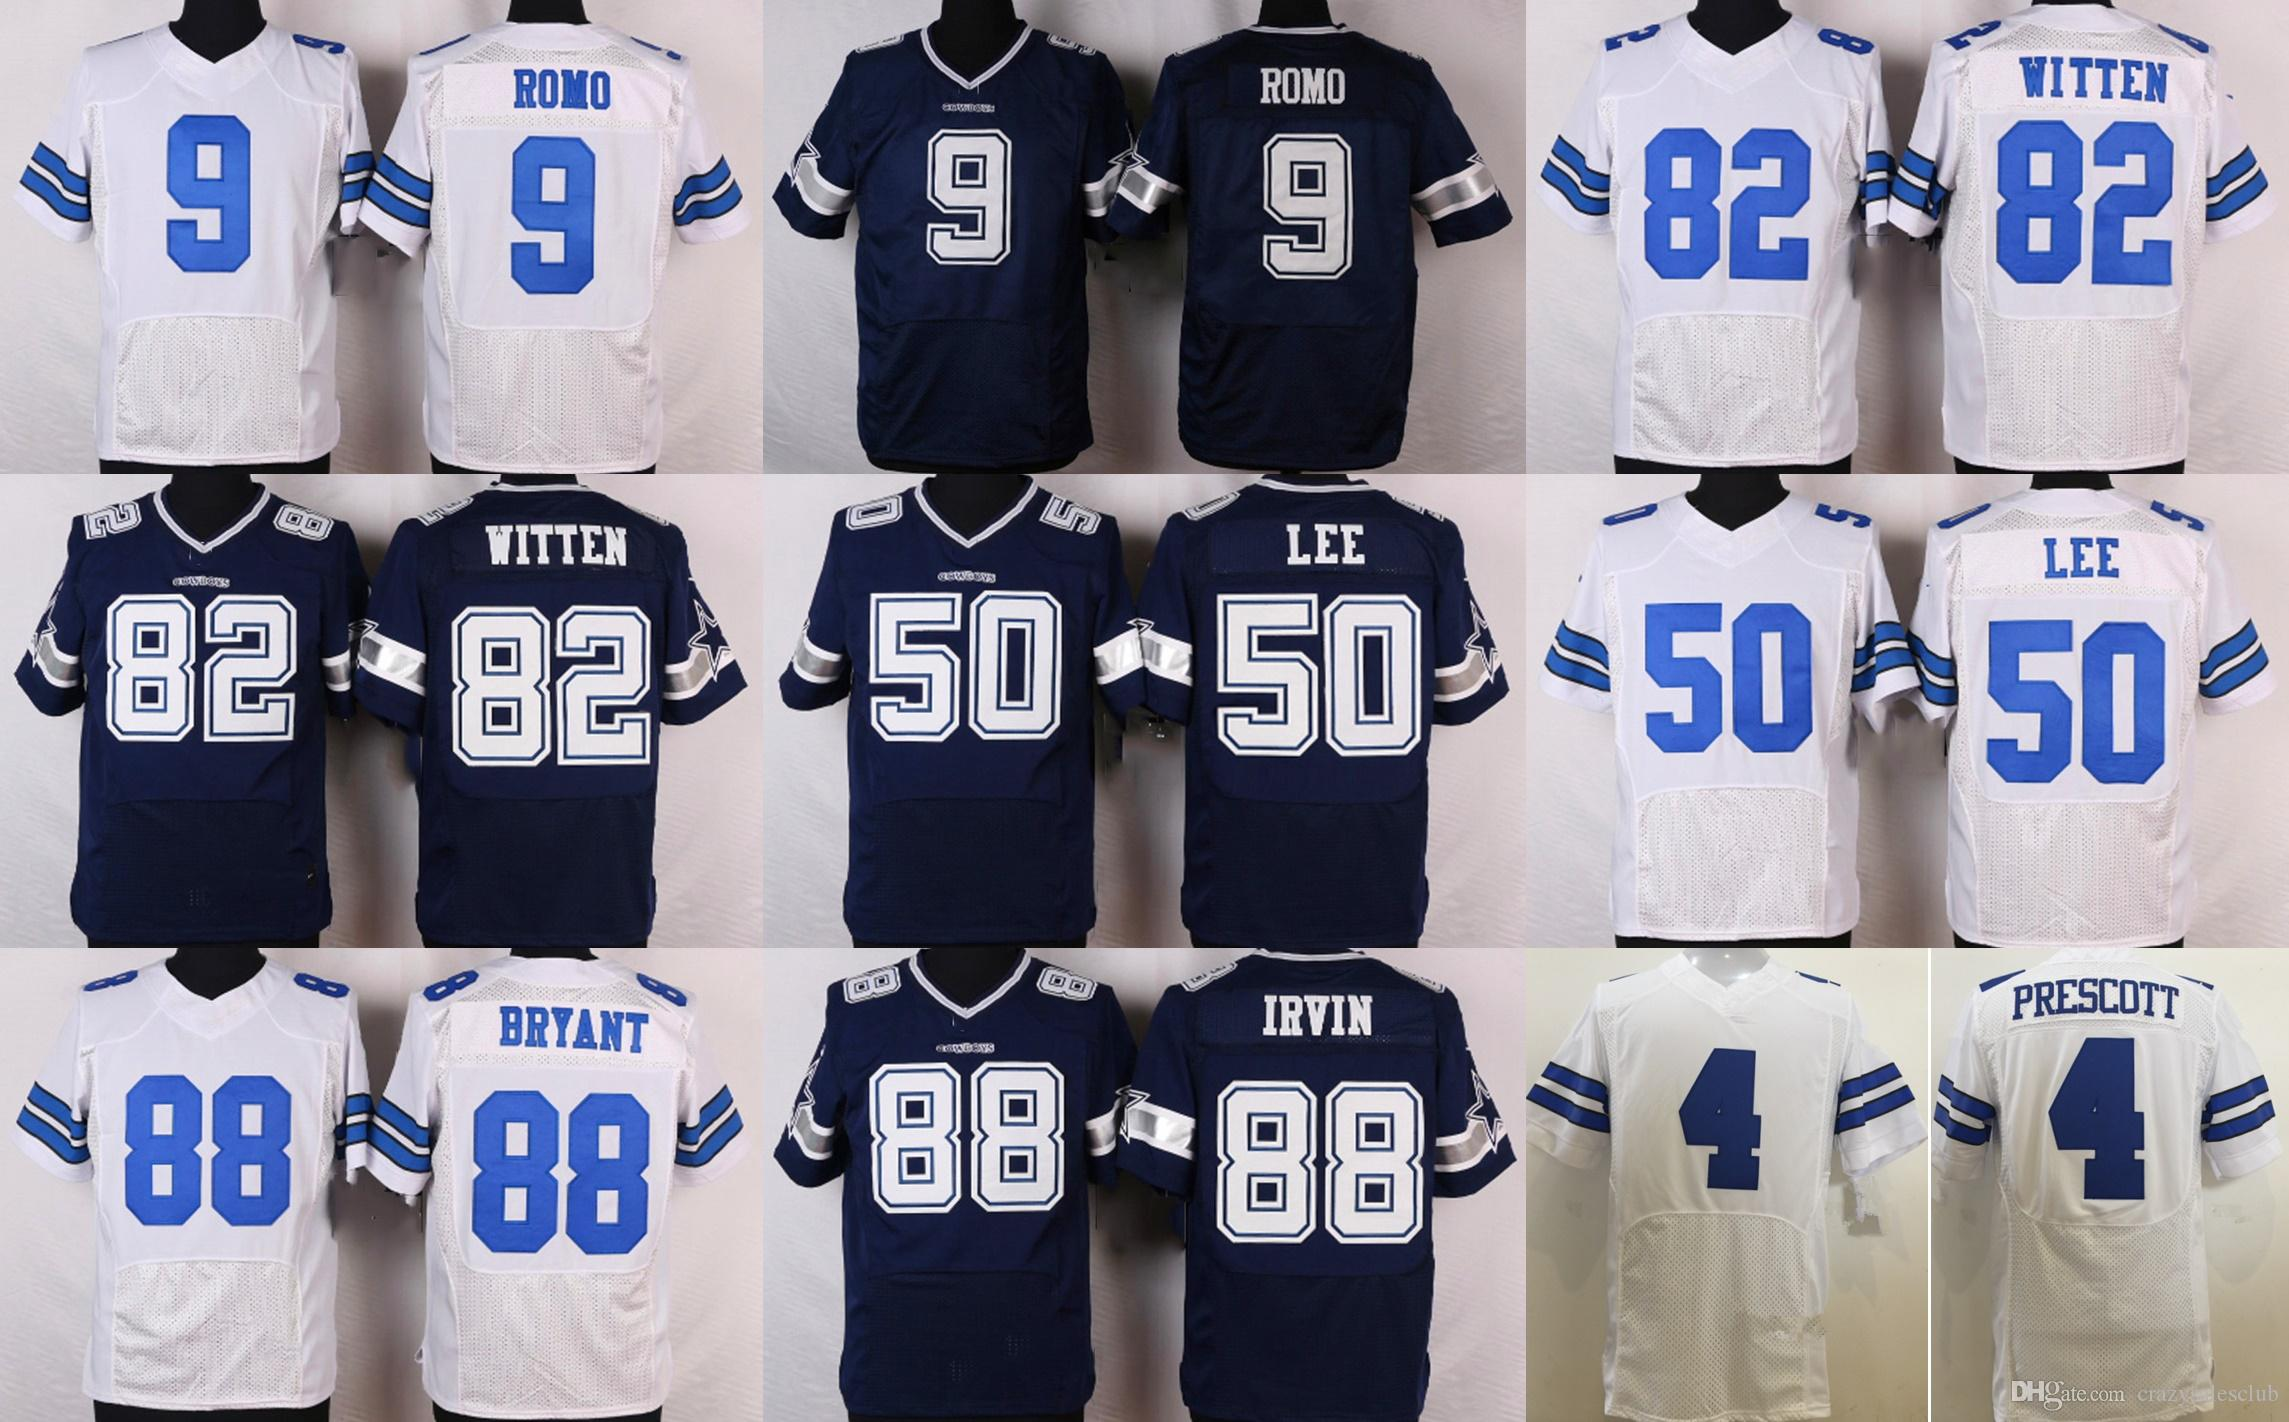 sean lee stitched jersey